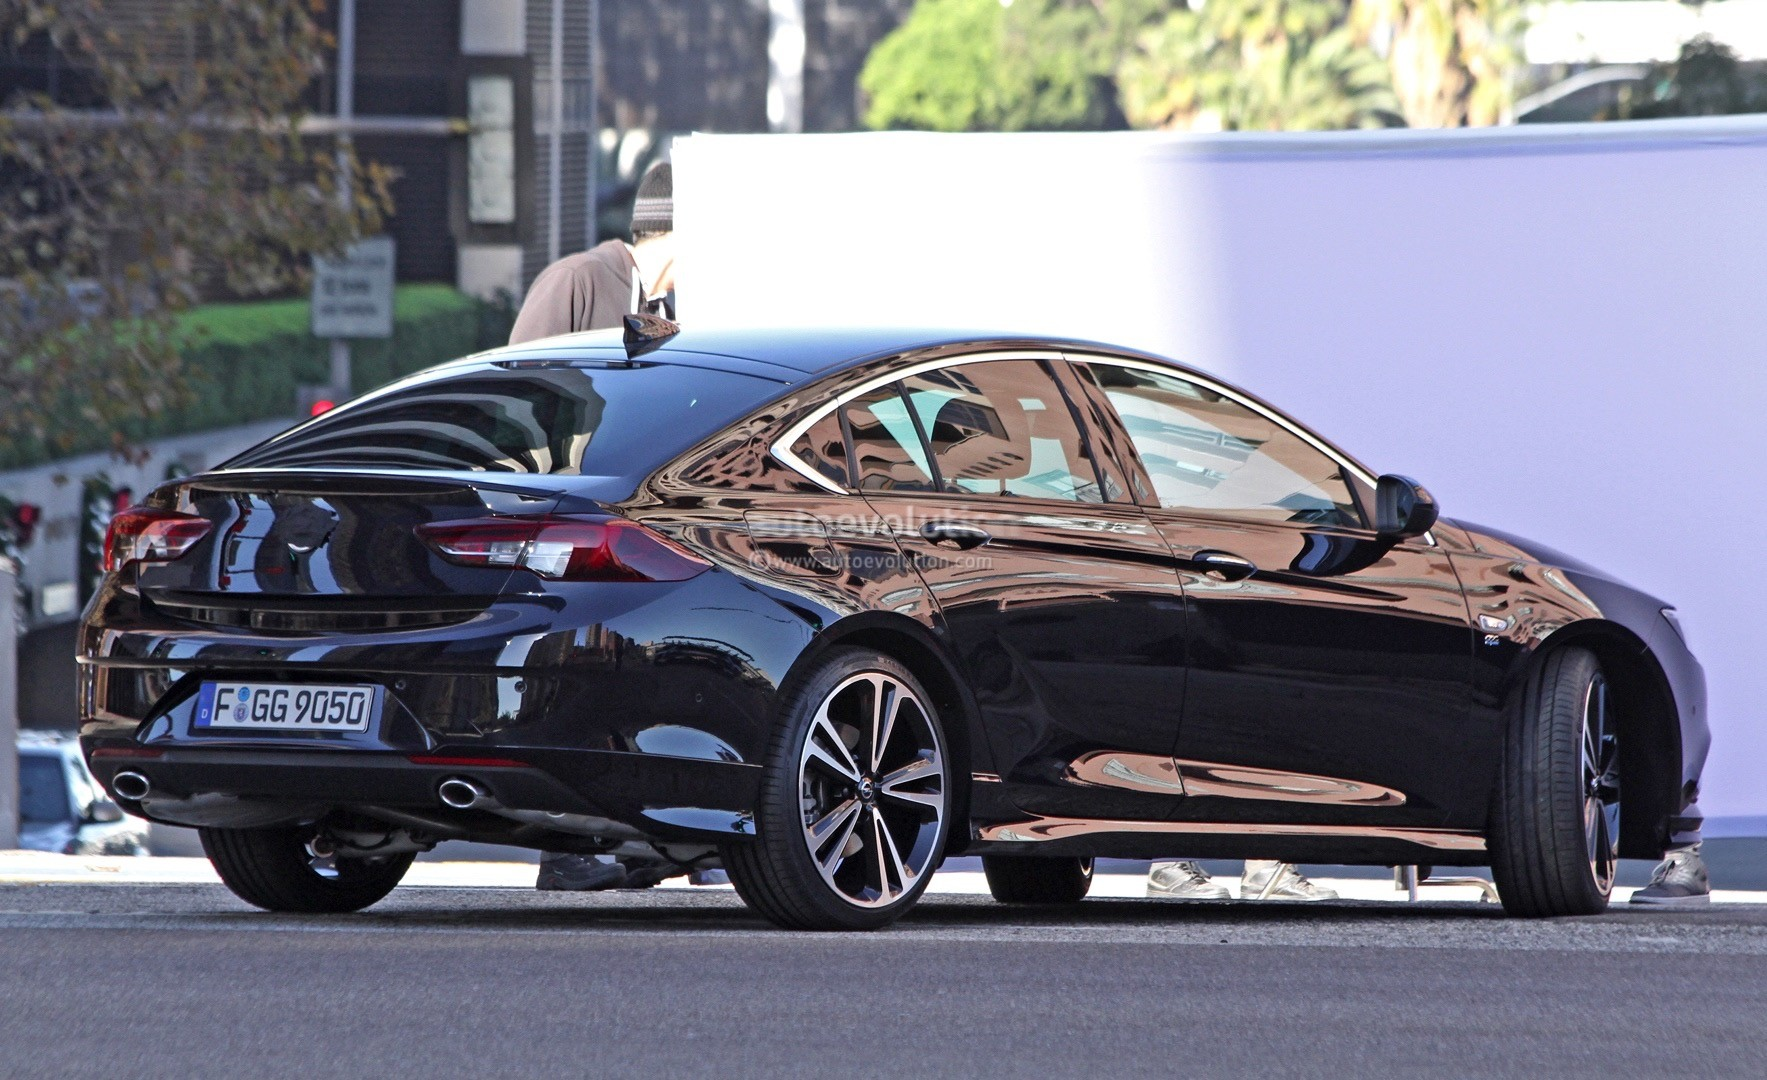 2017 opel insignia spied sans camouflage looks all grown up autoevolution. Black Bedroom Furniture Sets. Home Design Ideas